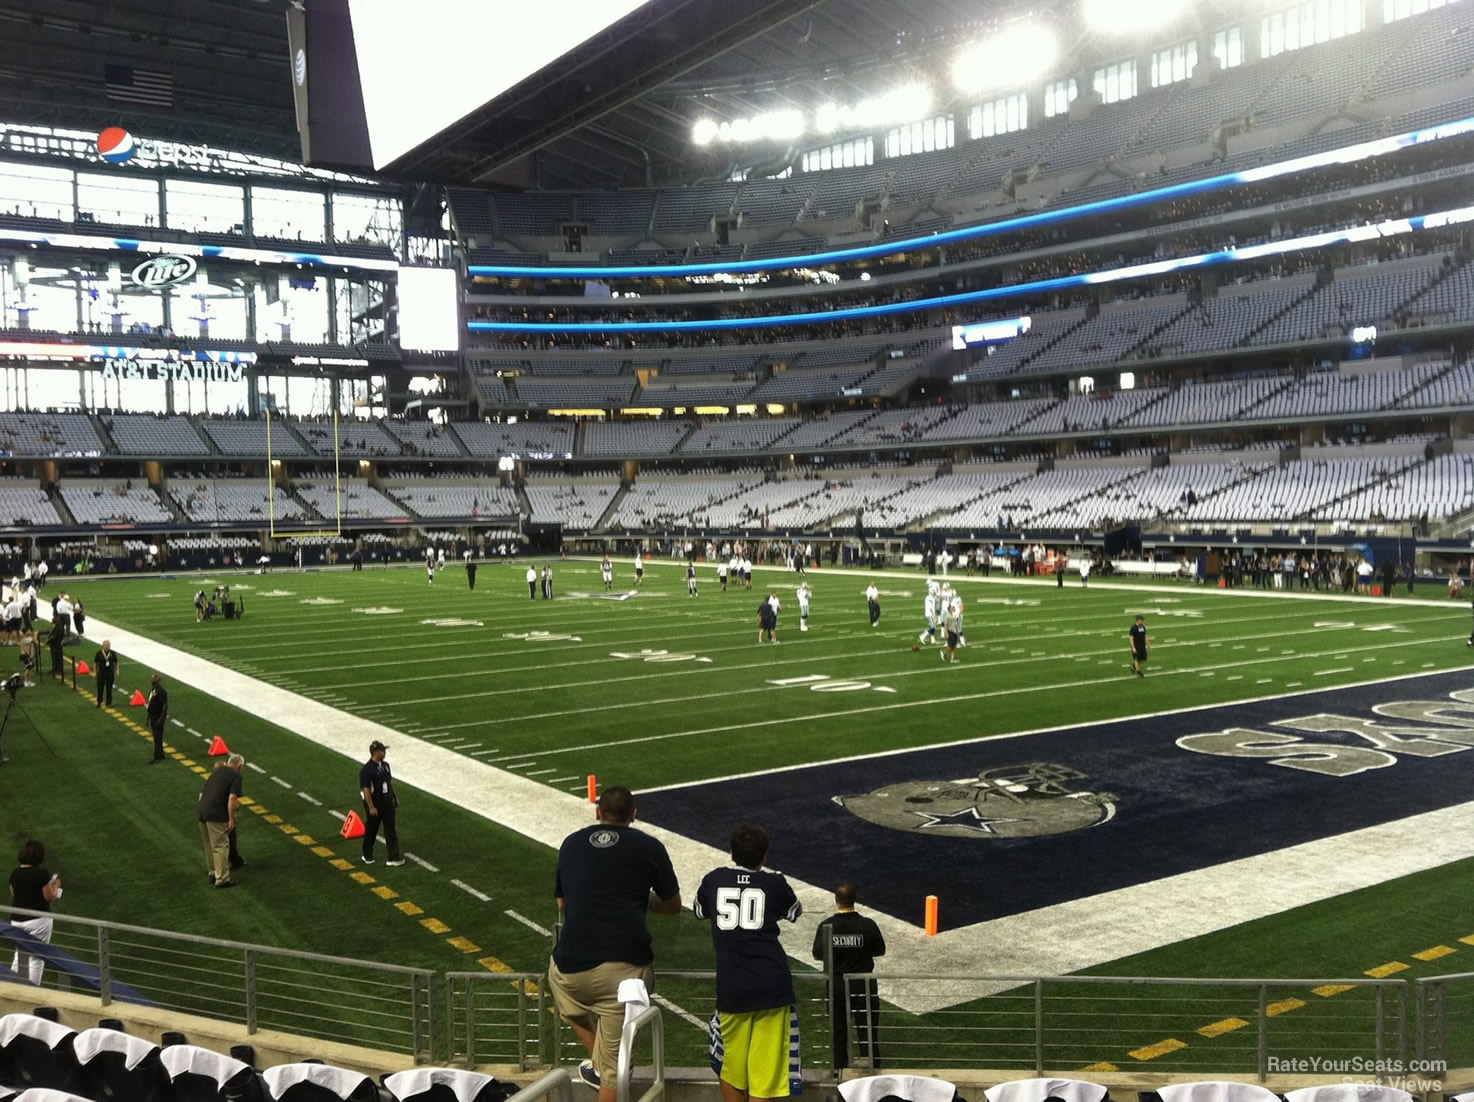 AT&T Stadium Section 101 - Dallas Cowboys - RateYourSeats.com